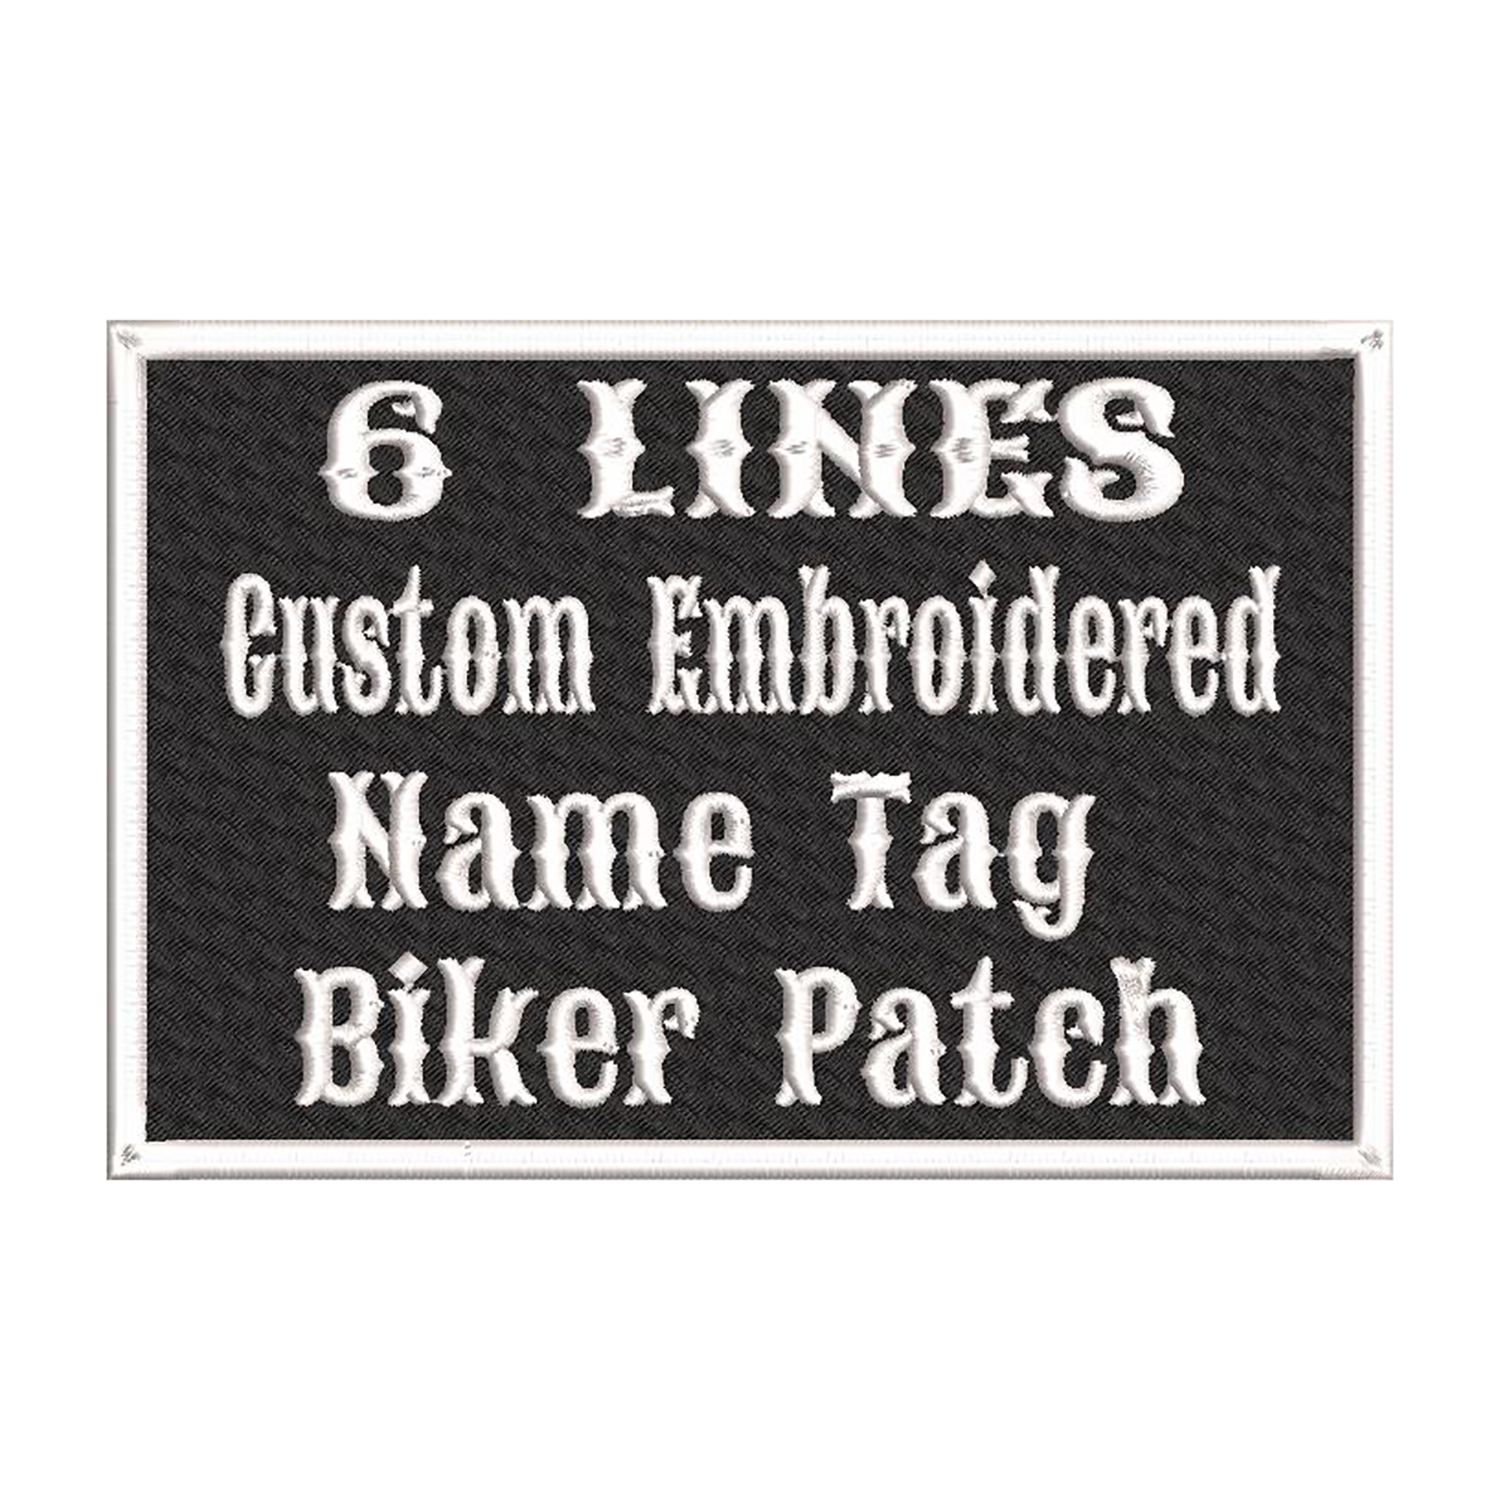 6 x 4 Custom Embroidered Name Tag Biker Vest Patch